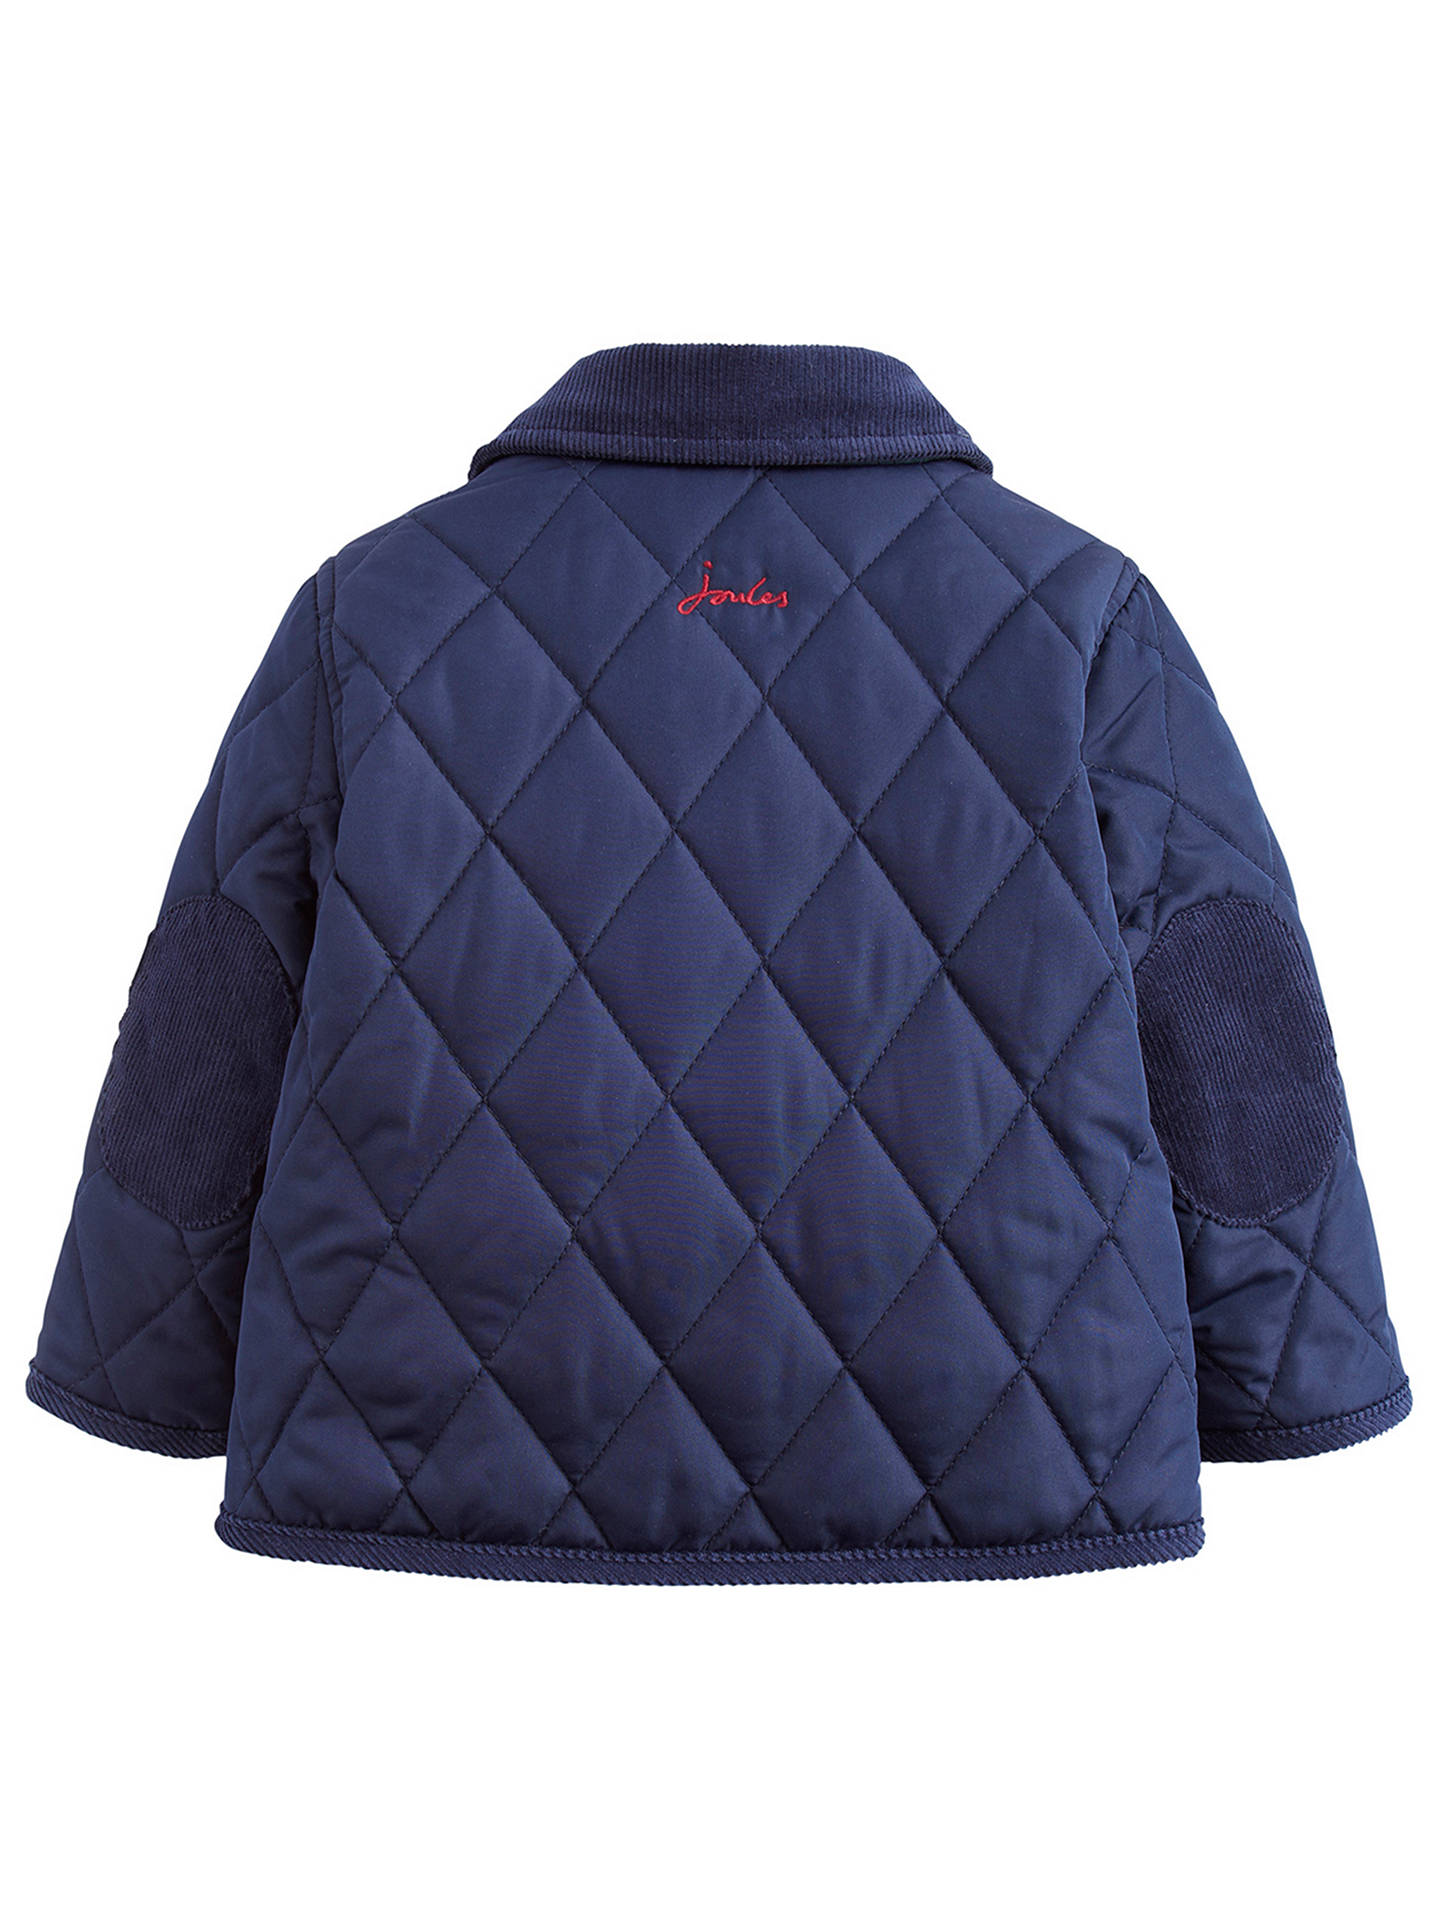 Buy Baby Joule Milford Quilted Jacket, Navy, 0-3 months Online at johnlewis.com